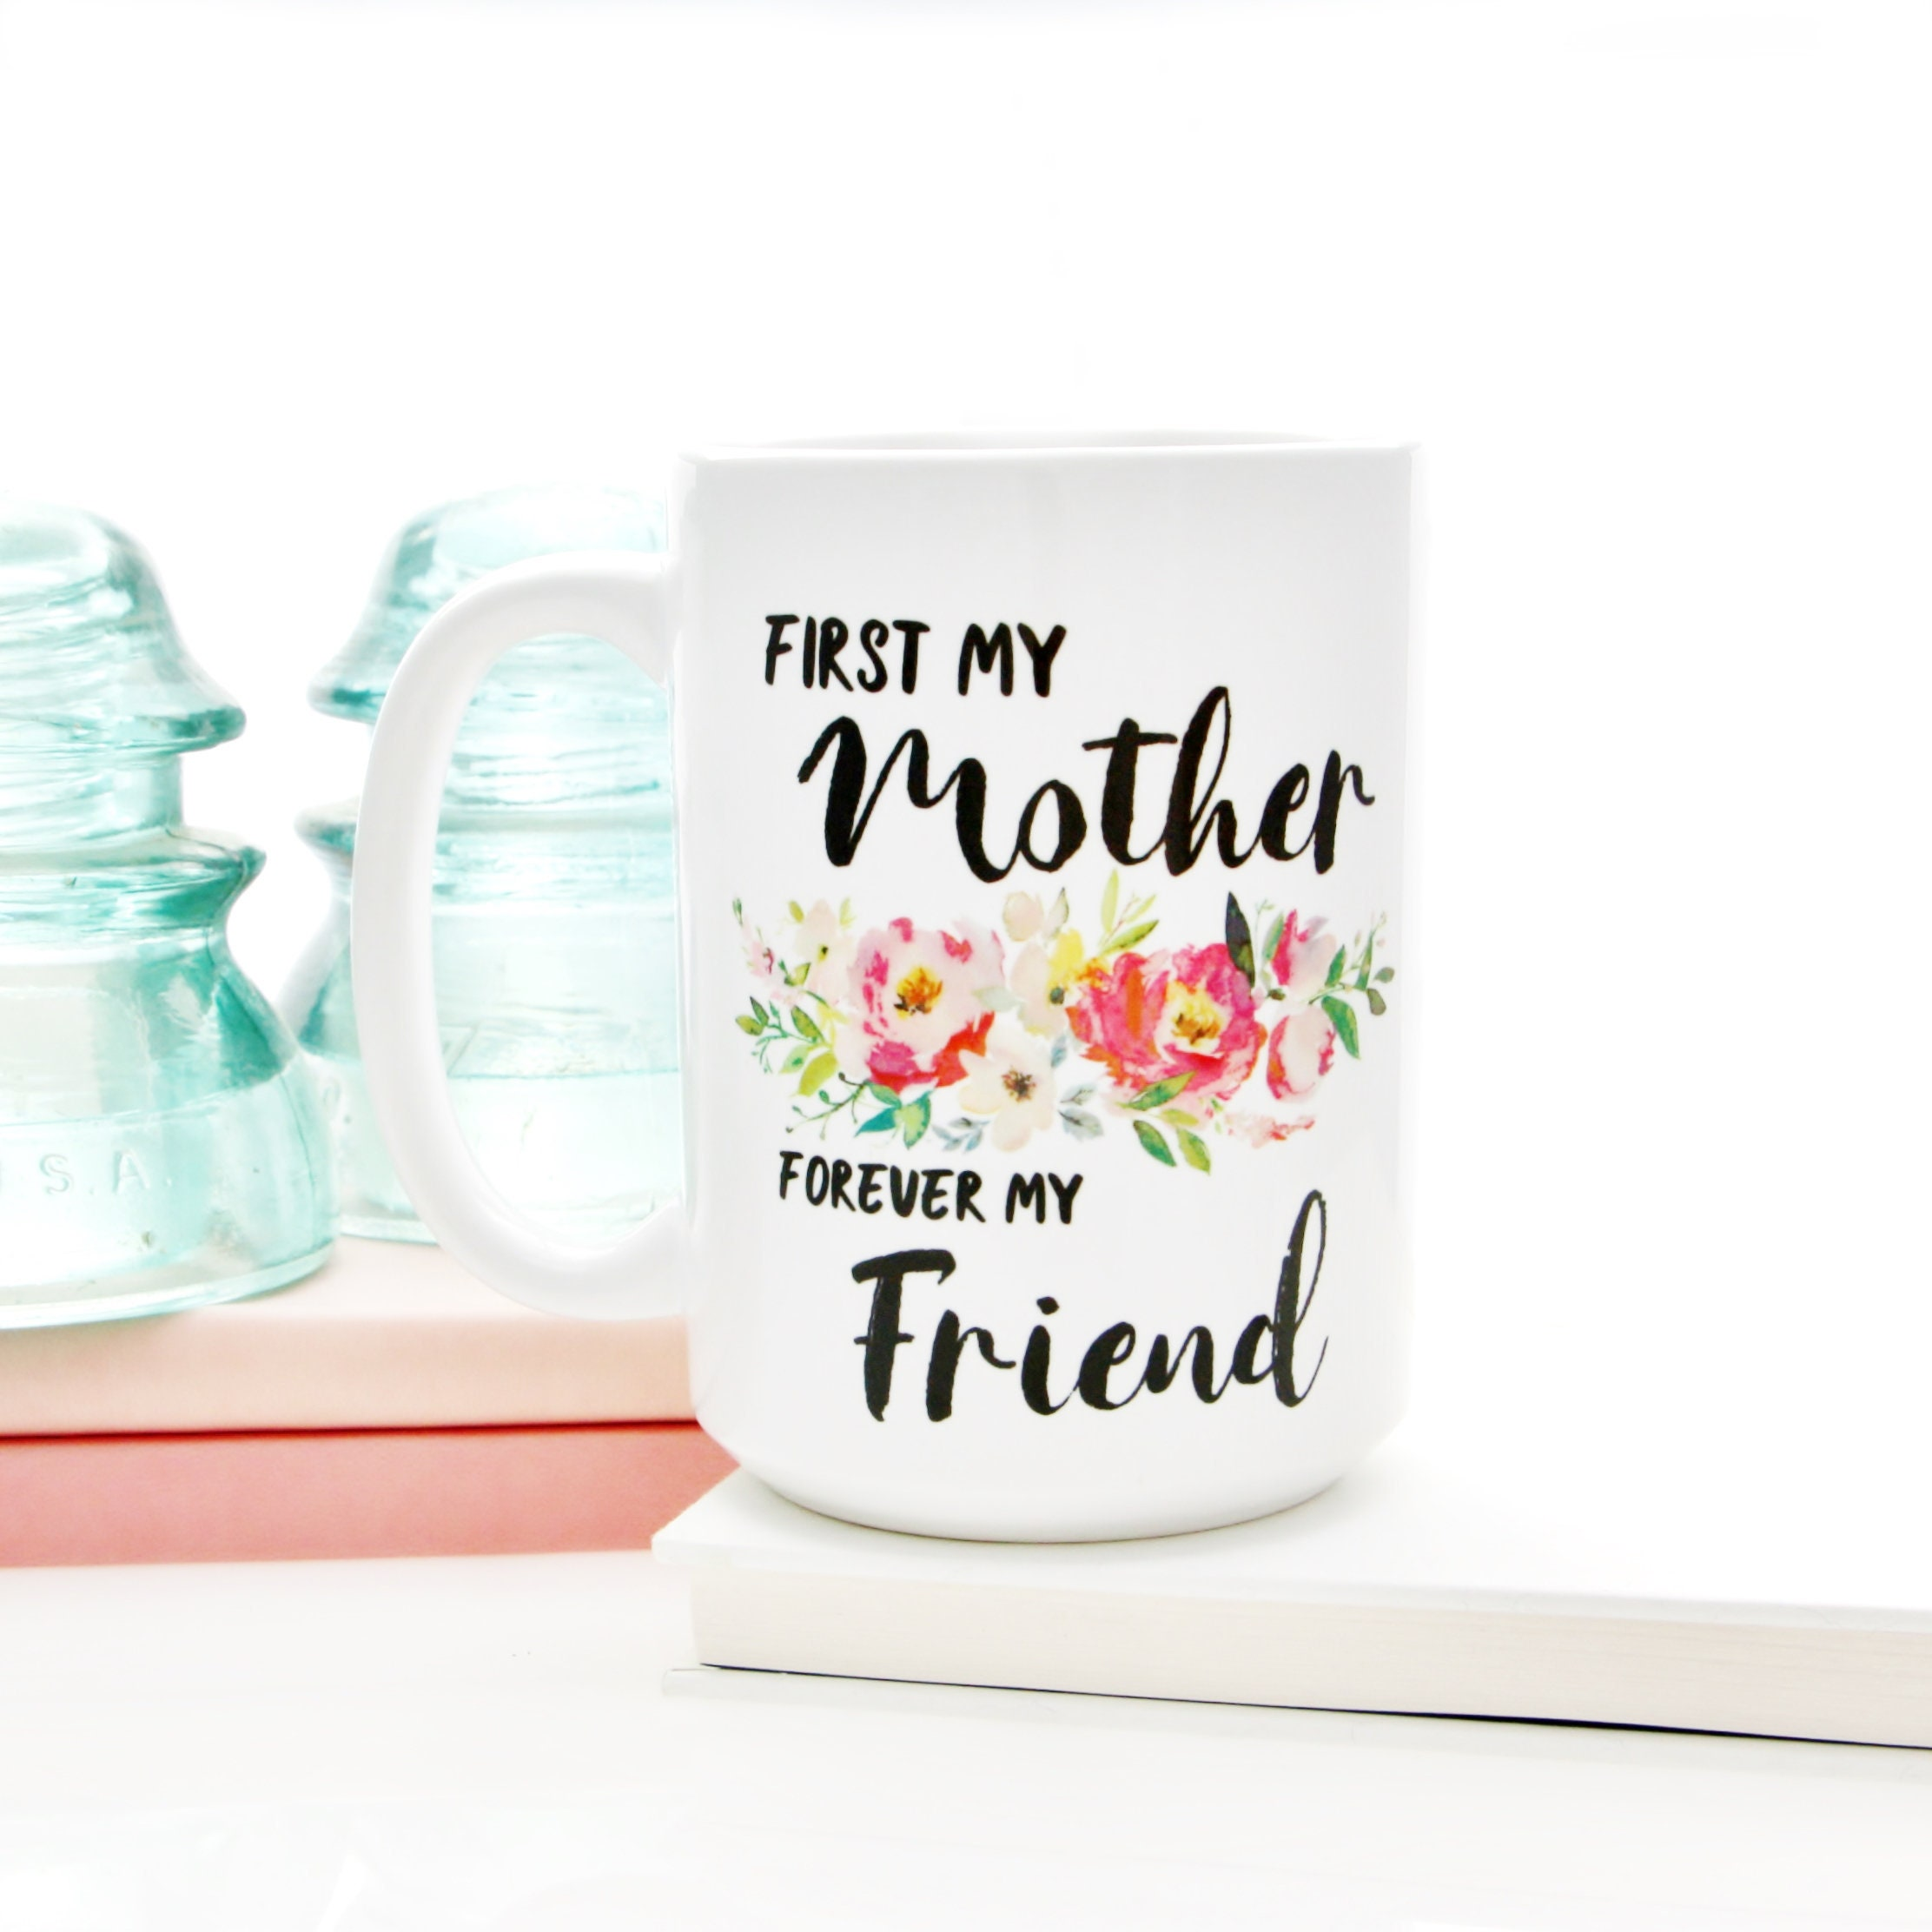 First My Mother Forever Friend Mug For Mothers Day Birthday Gift Mom Coffee Tea Cup Gifts